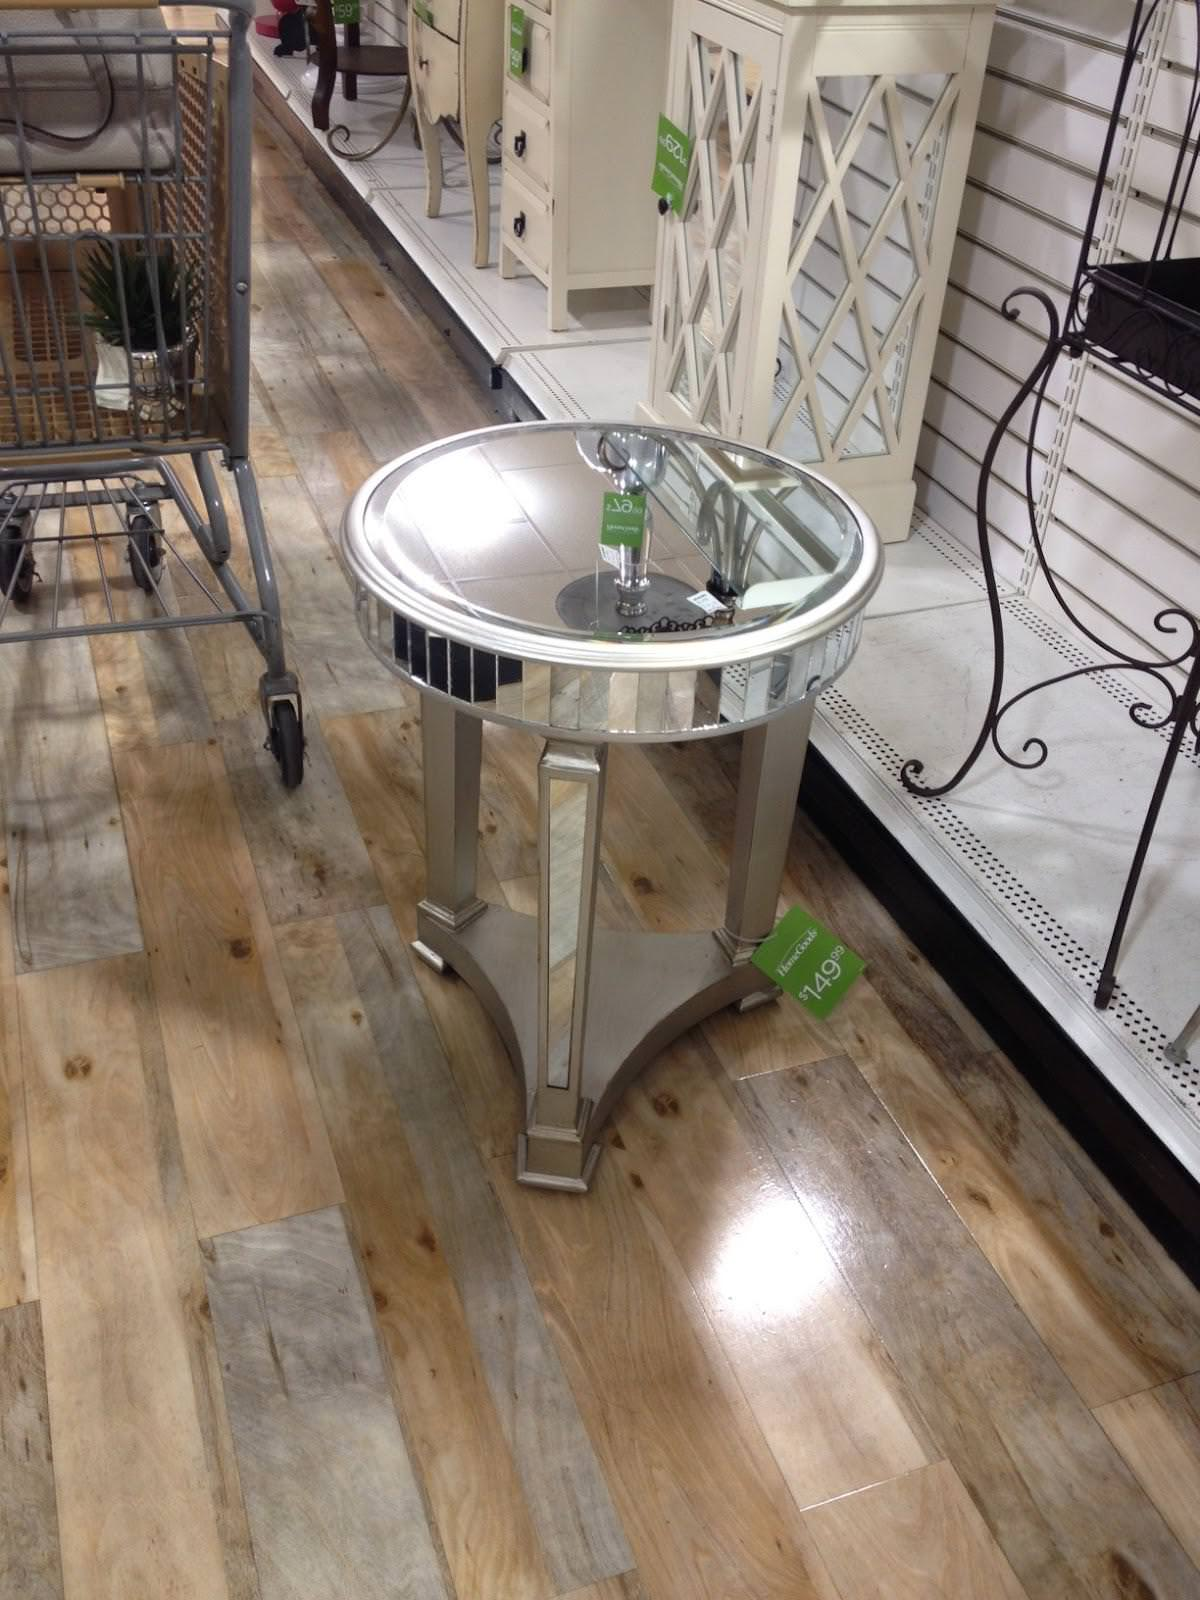 luxury mirrored glass accent tables way modern table farmhouse seats countertop legs wood small bar height ikea patio furniture mid century rustic kitchen phone house designs